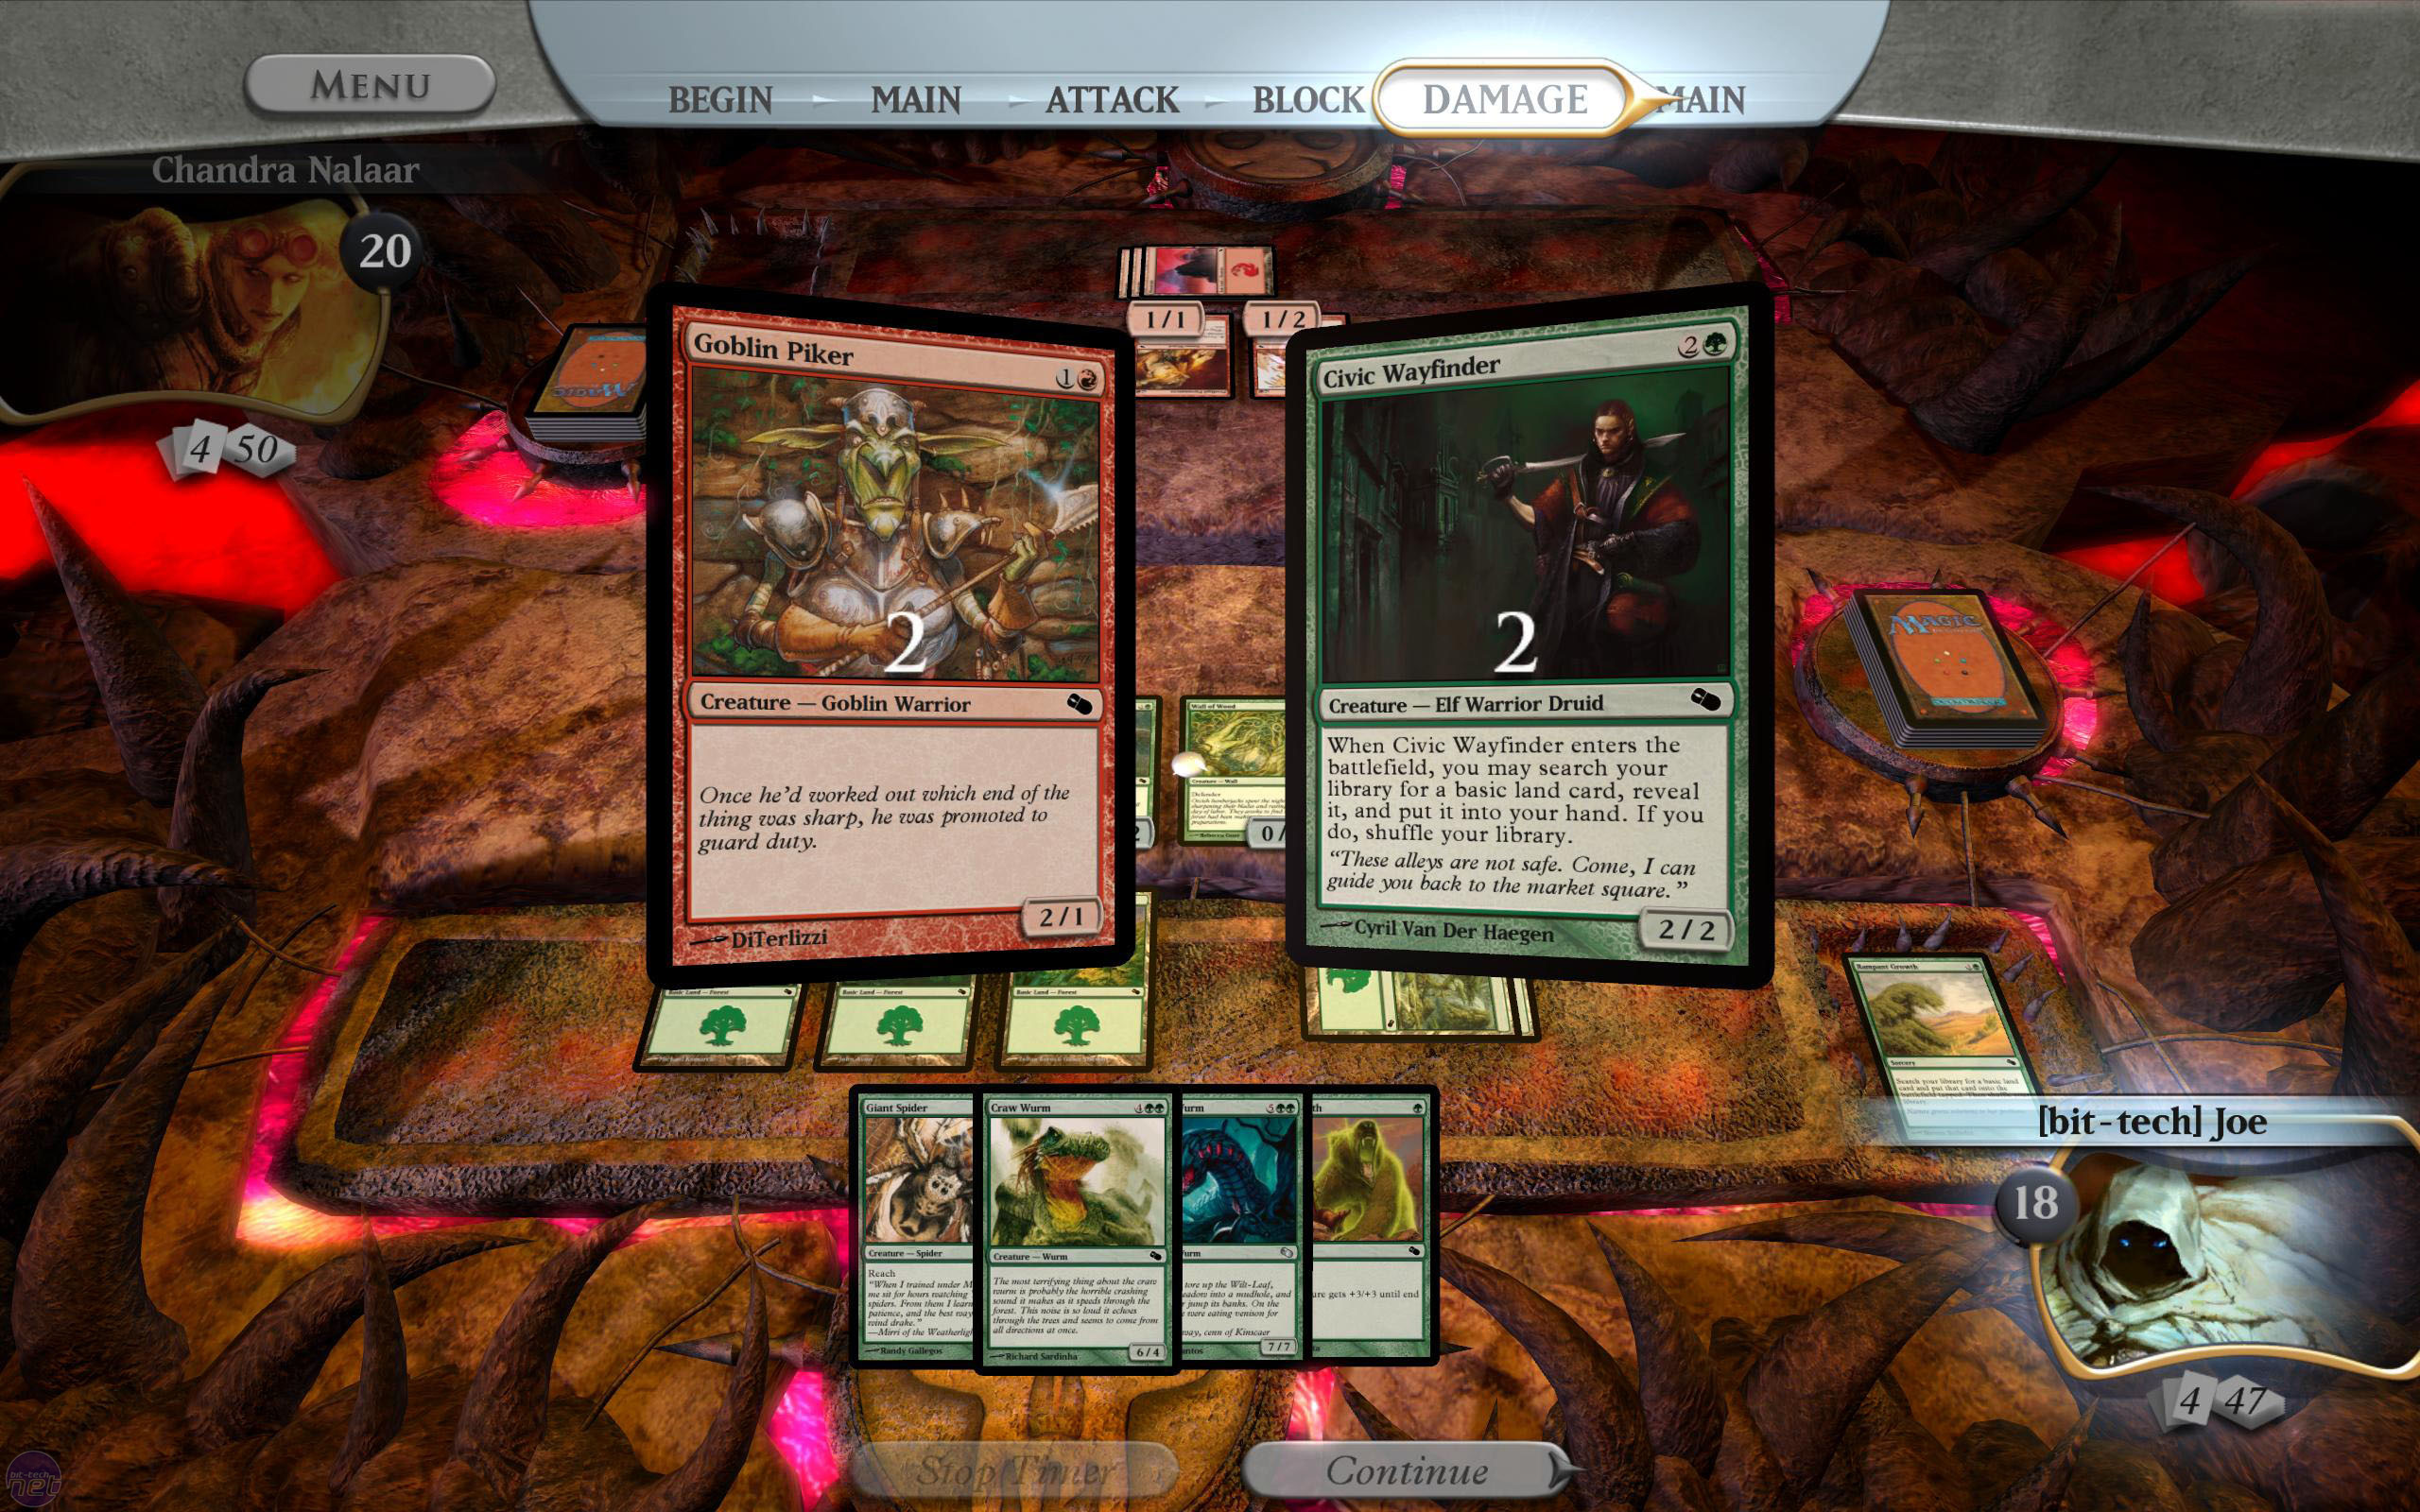 Magic: The Gathering Duels of the Planeswalkers review | bit